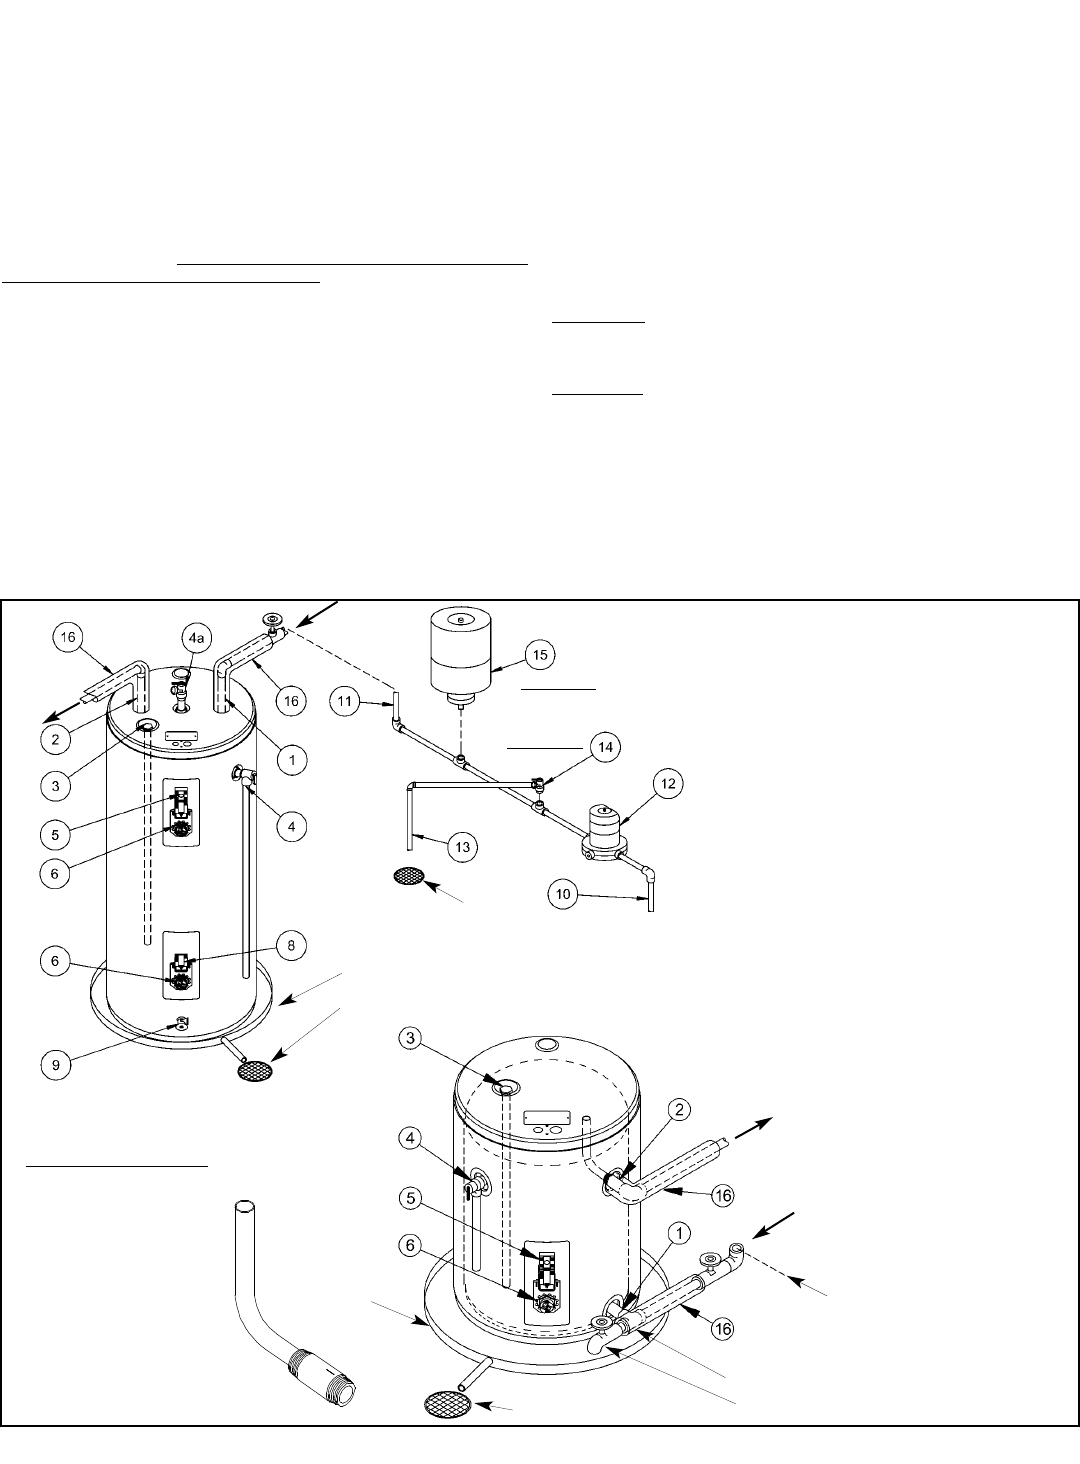 wiring diagram hot water heater thermostat with Wiring Diagram For Ge 6 Gallon Water Heater on 727 additionally 514502 Need C Wire Boiler in addition Ariston waterheater parts further Heating Ventilation And Air Conditioning For The Homeowner besides Electric Baseboard Heat Length.